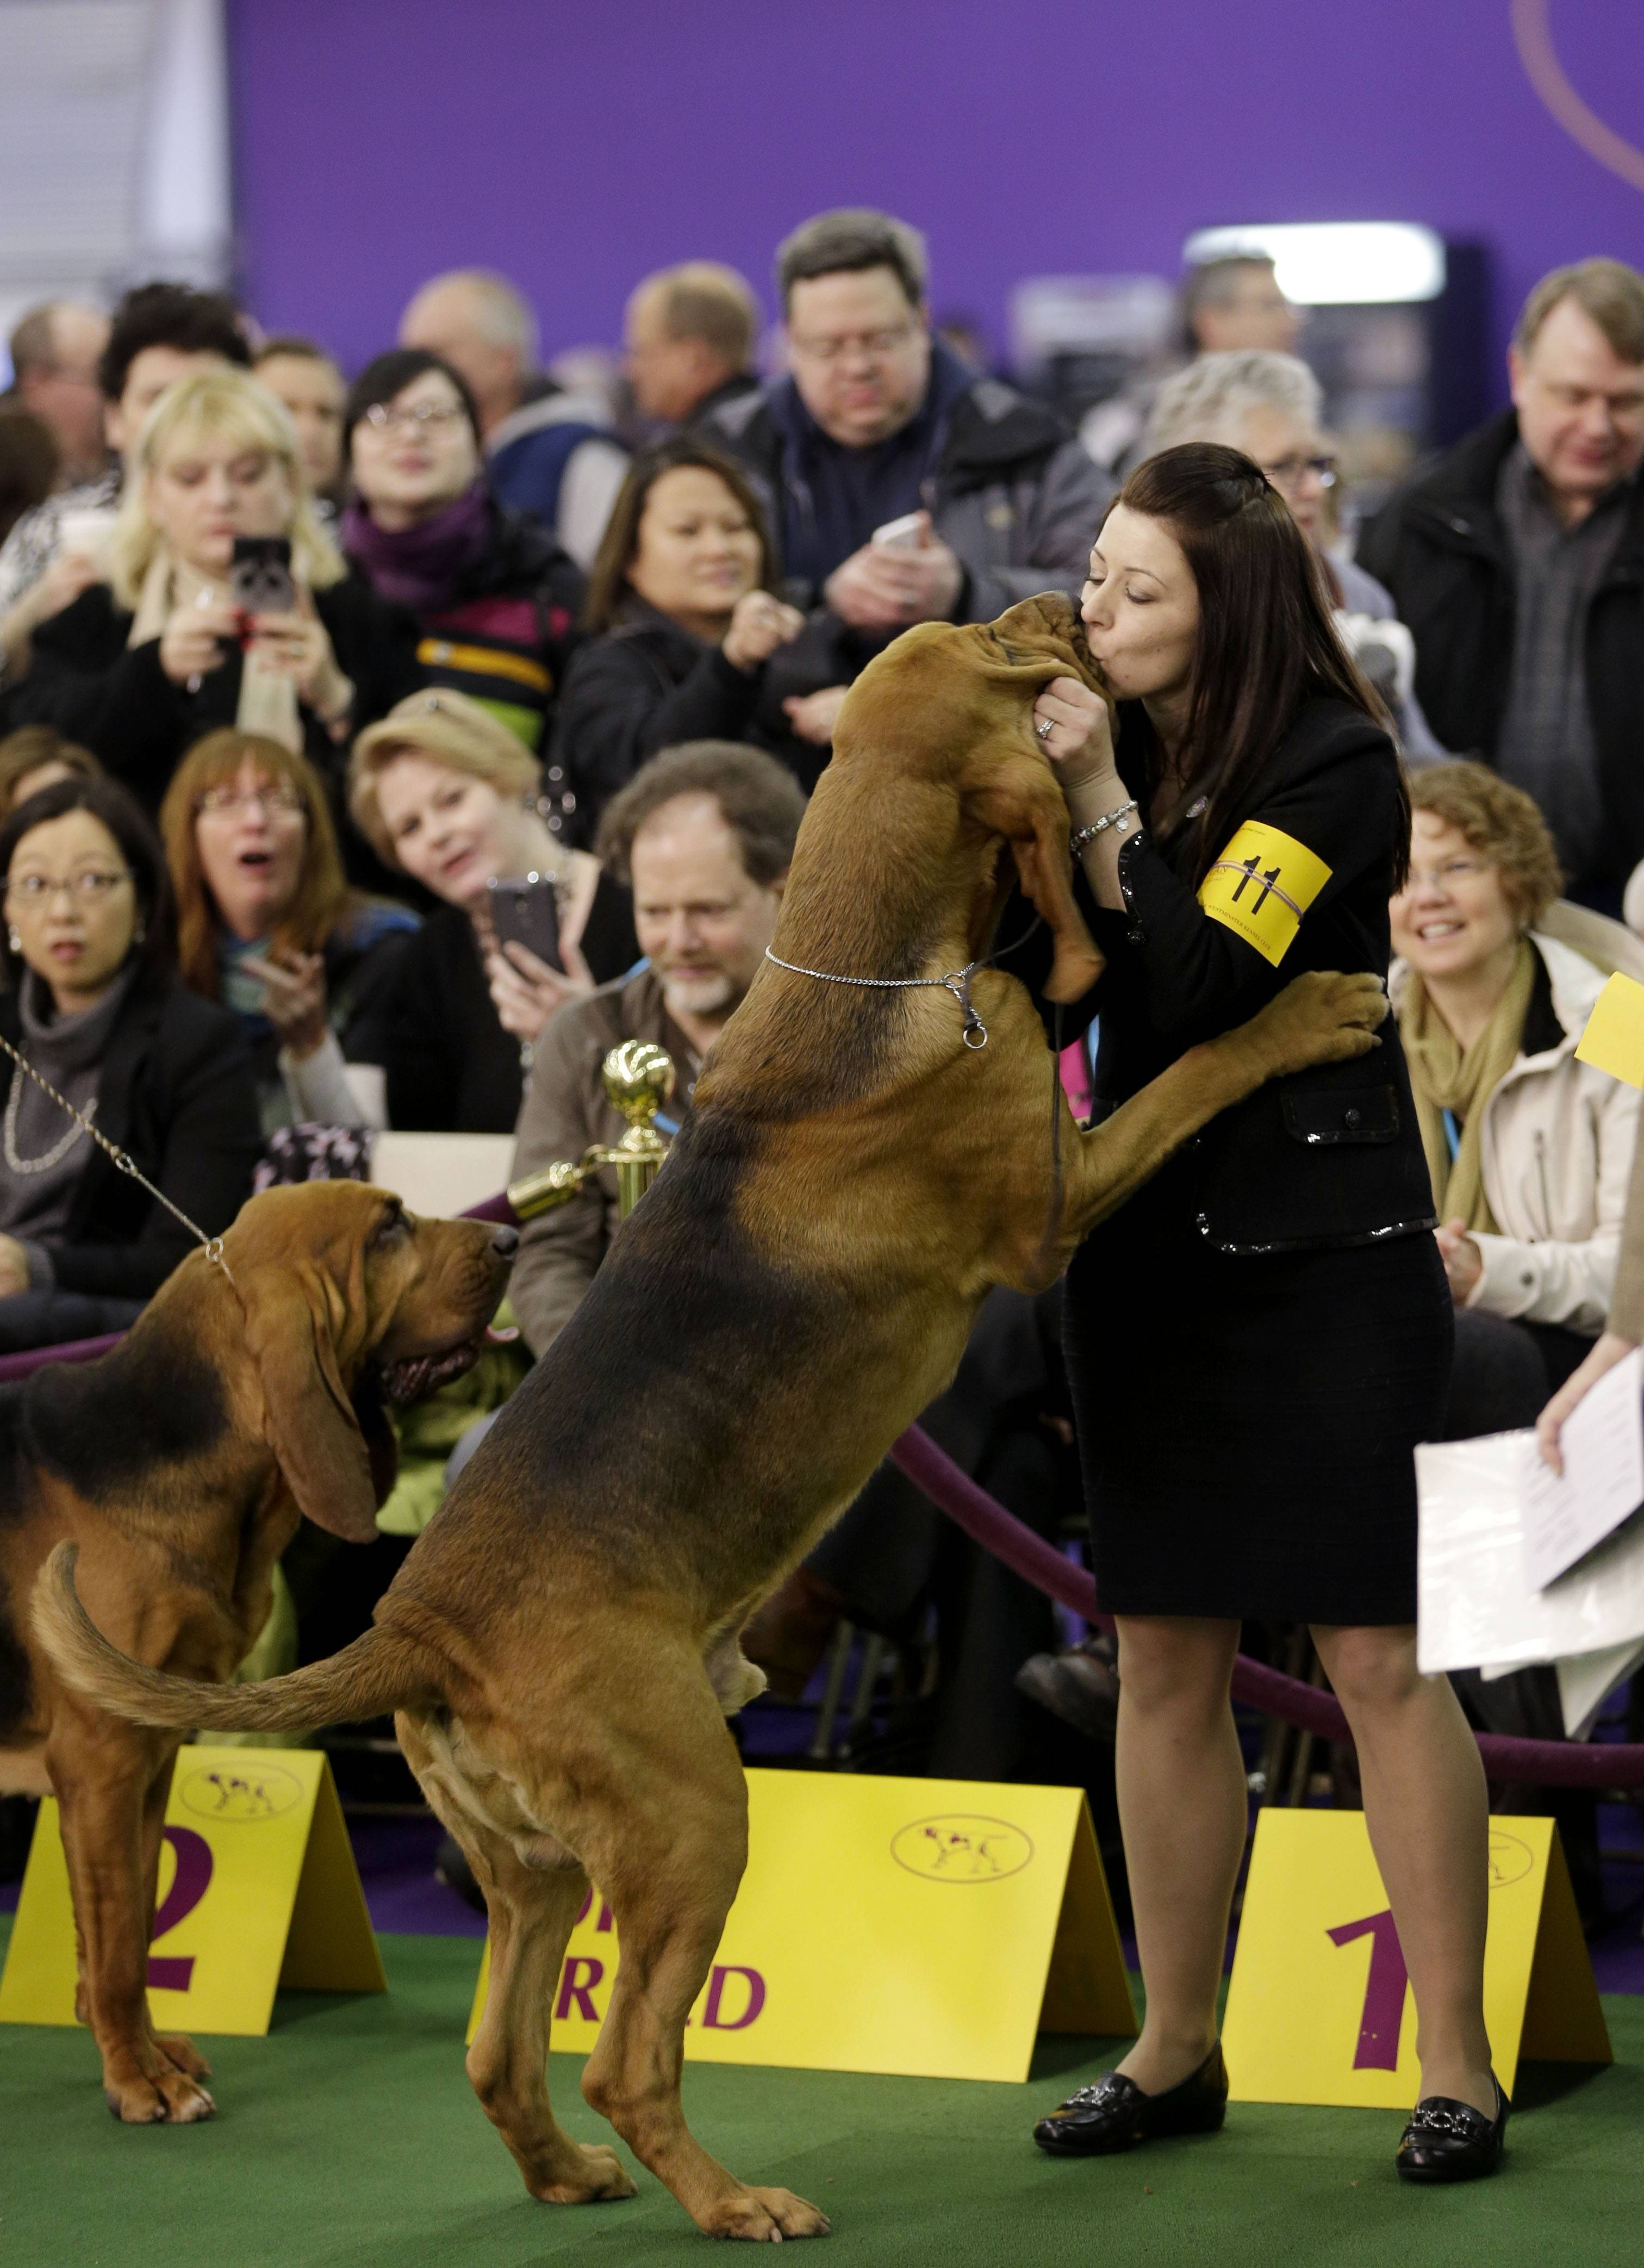 Images: Beagle Miss P pulls an upset at Westminster